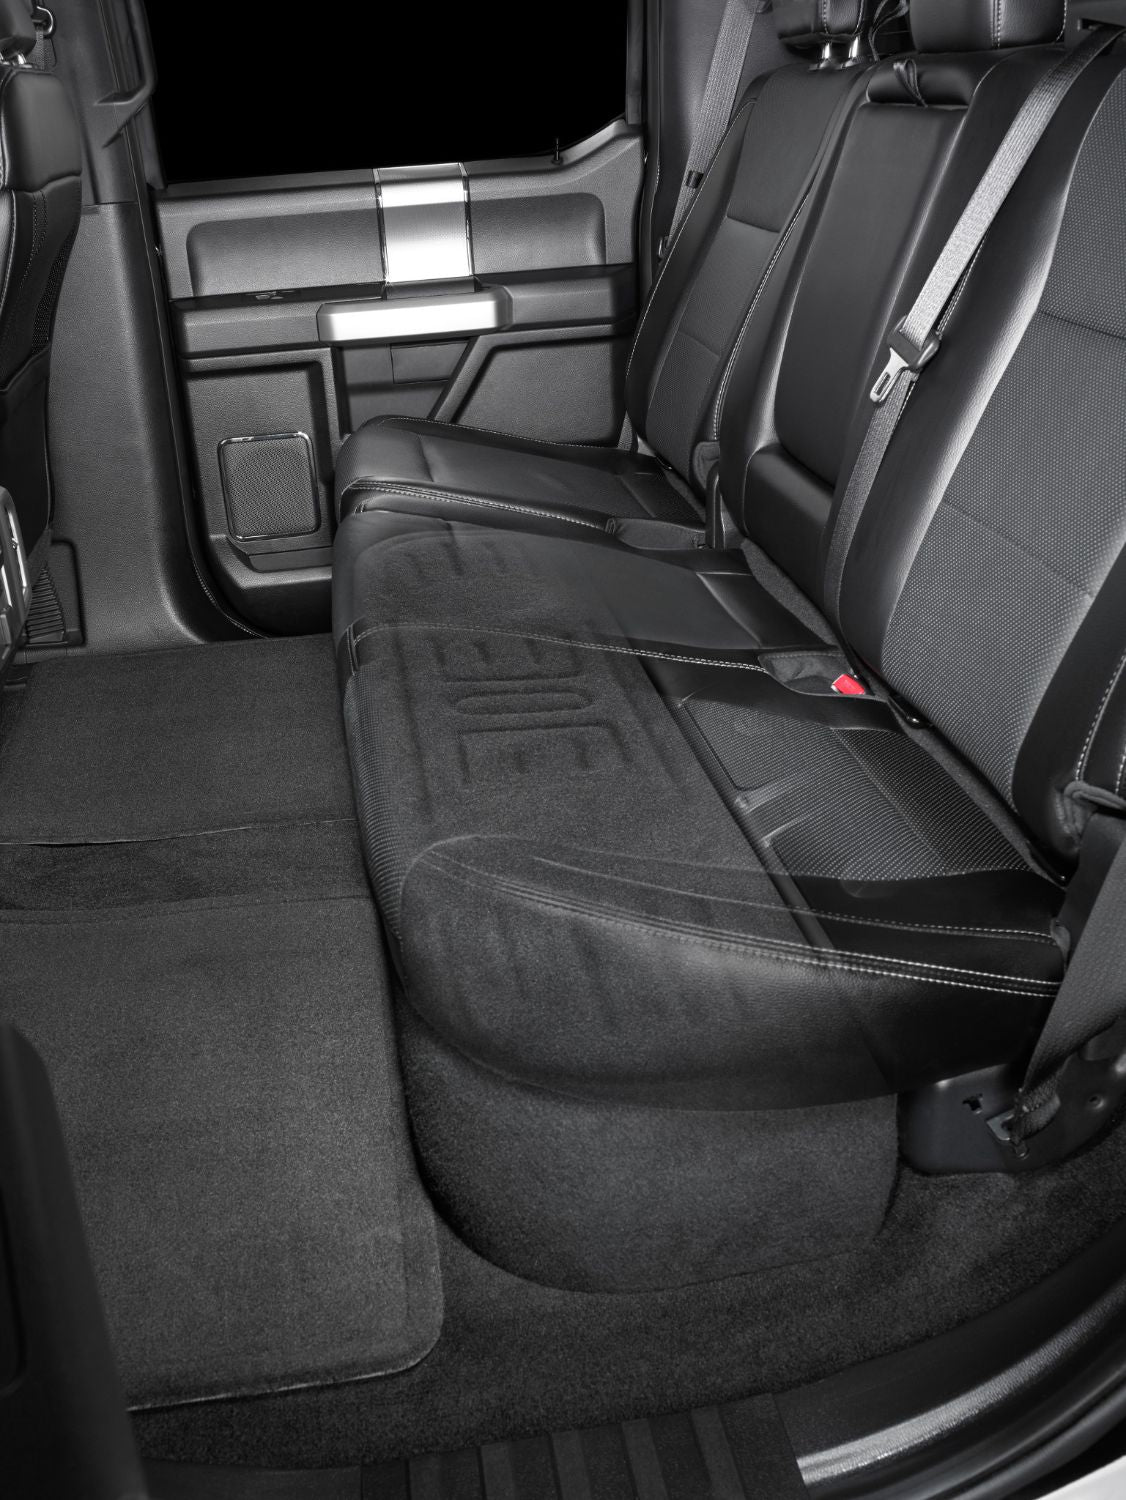 SB-F-150-SCDBL-12TW3 Stealthbox Installed in Vehicle